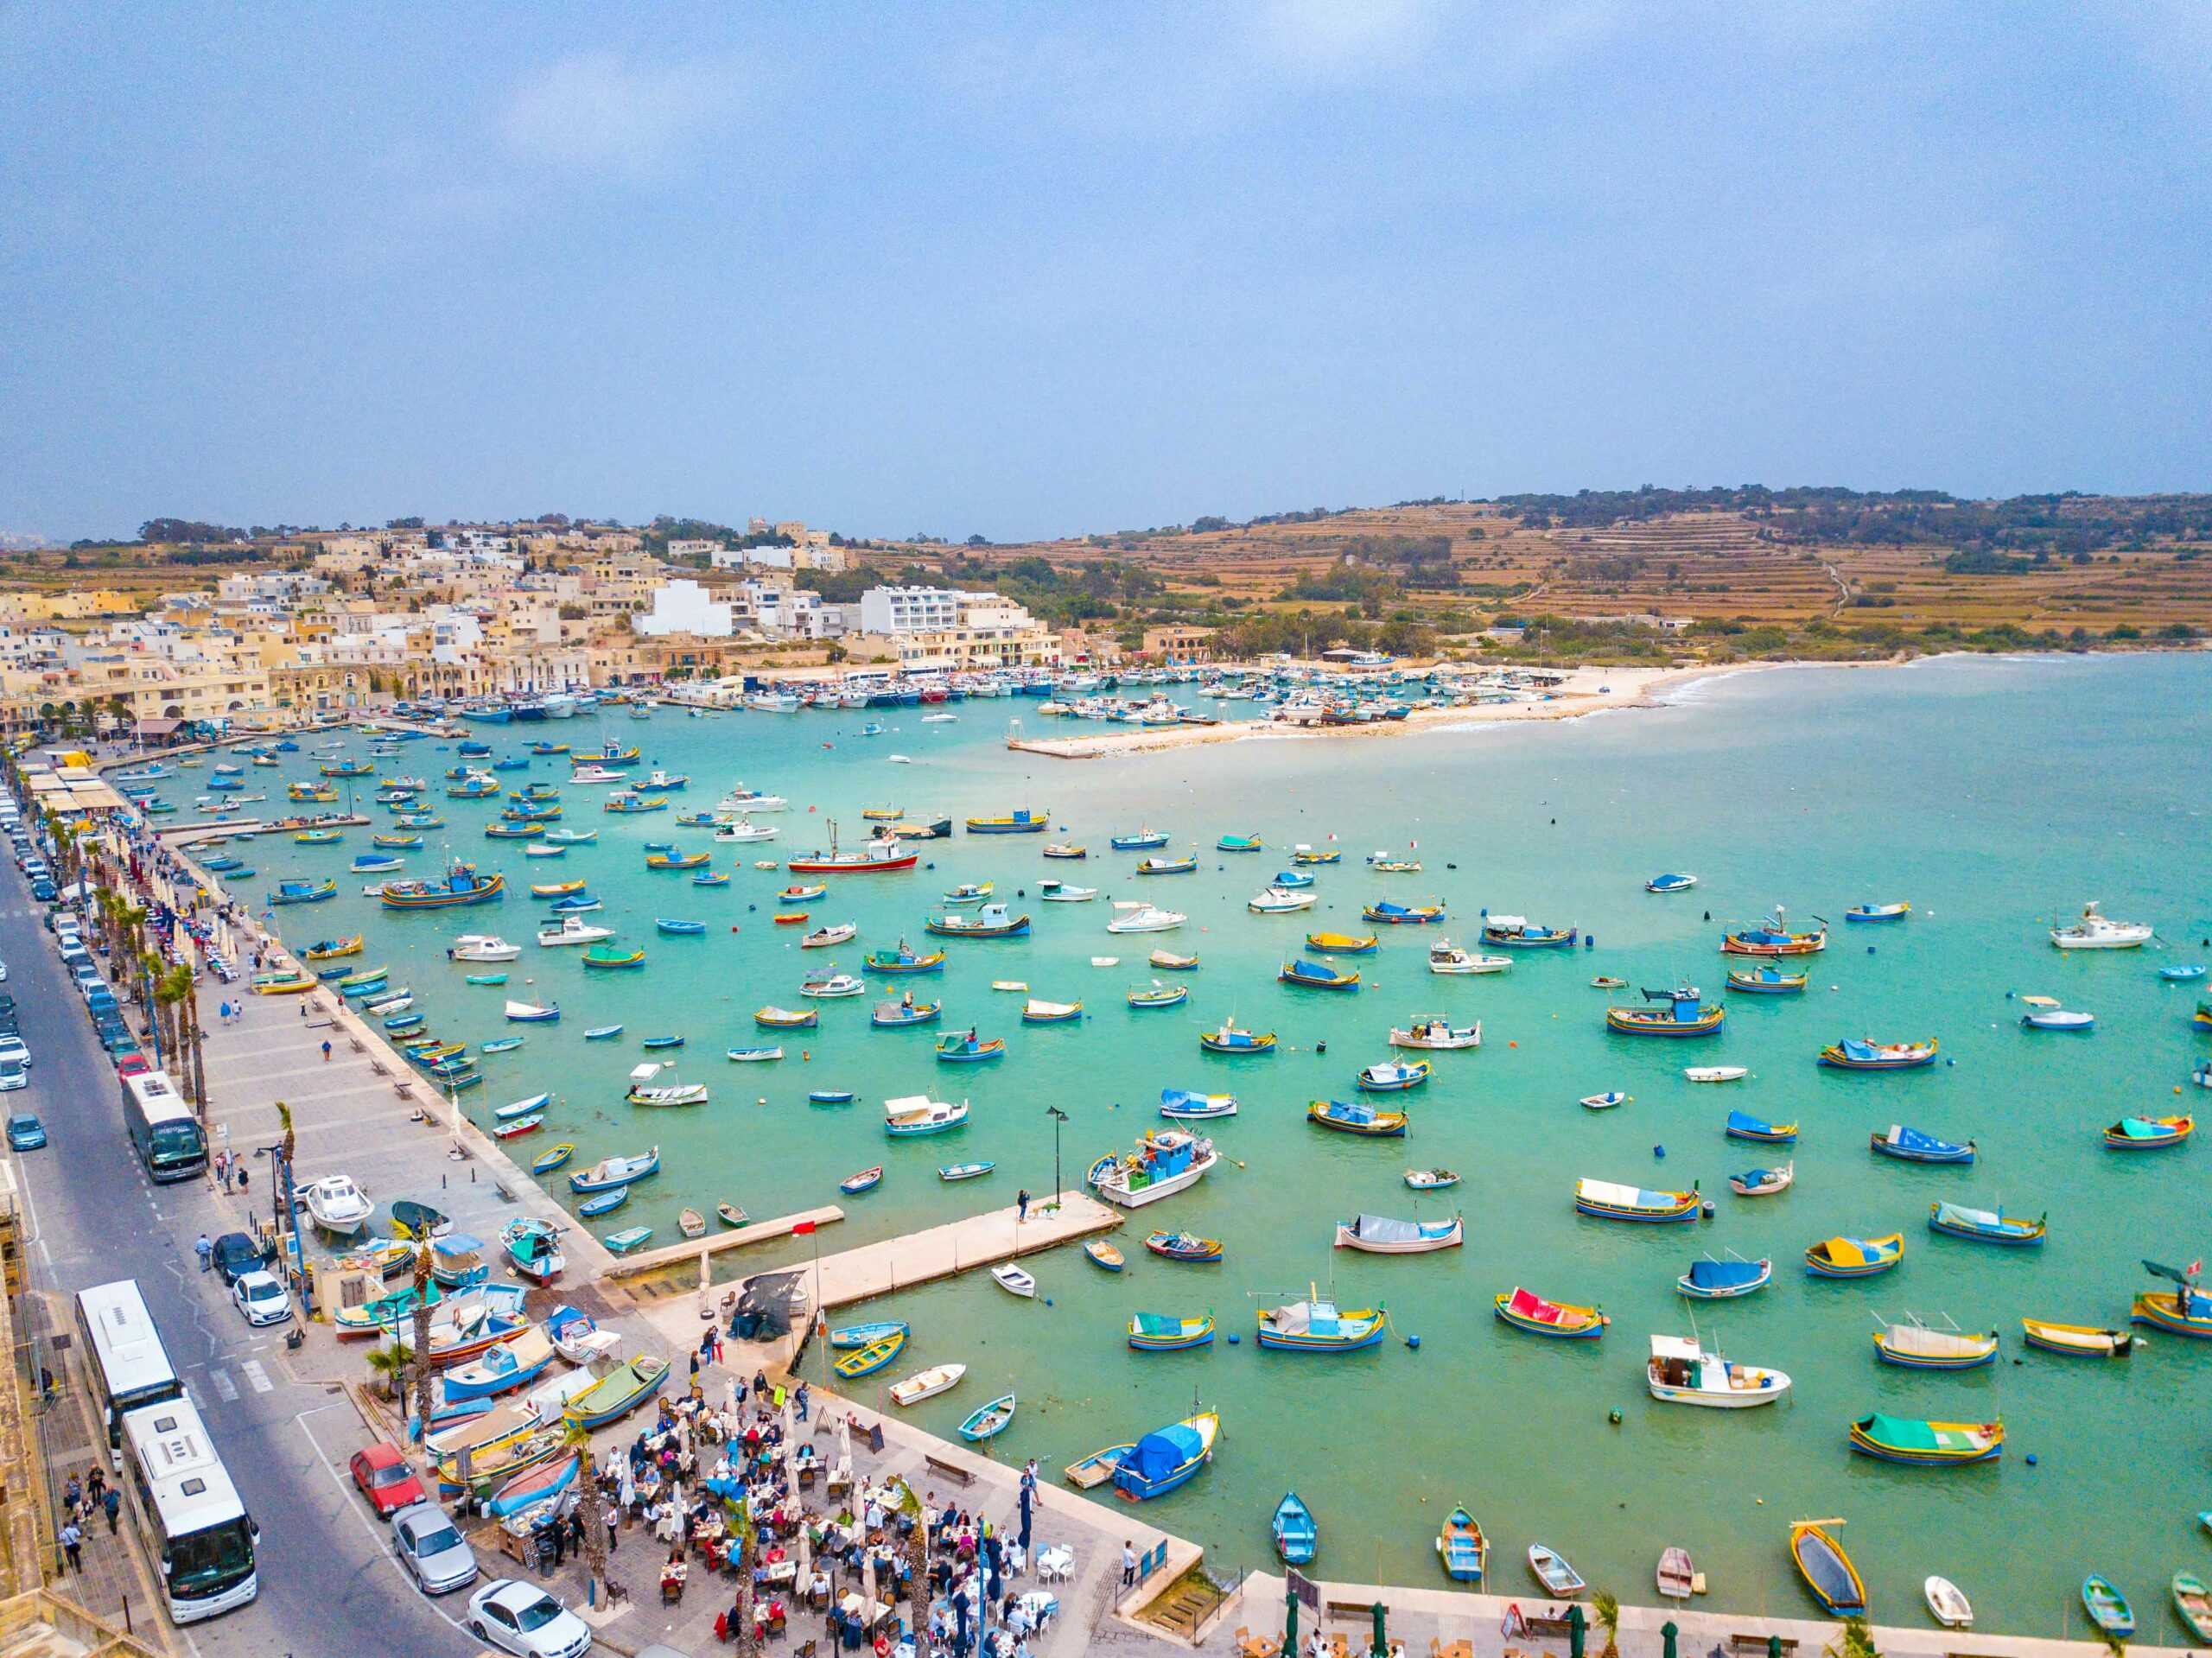 Canva---Traditional-eyed-colorful-boats-Luzzu-in-the-Harbor-of-Mediterranean-fishing-village